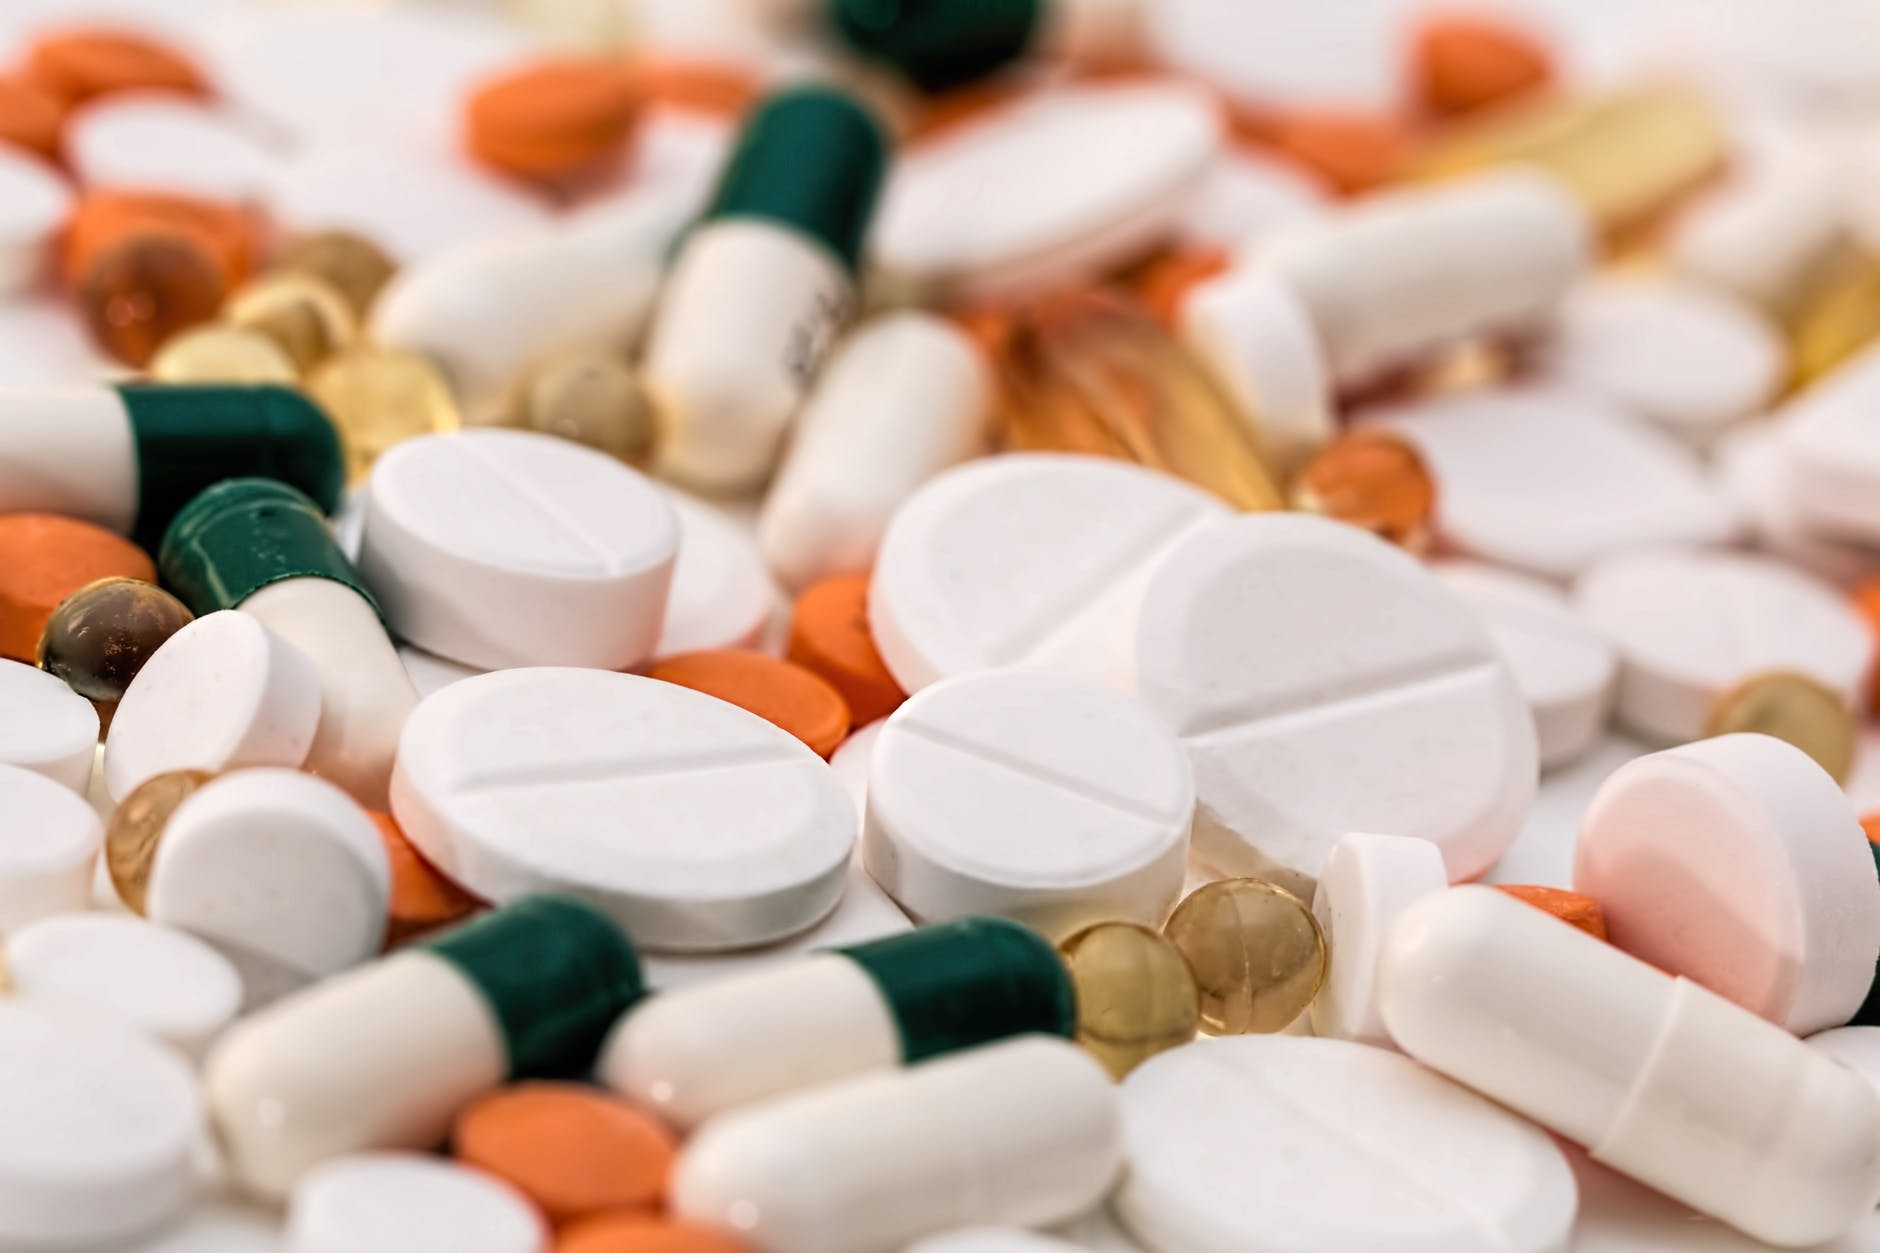 bunch of white oval medication tablets and white medication capsules